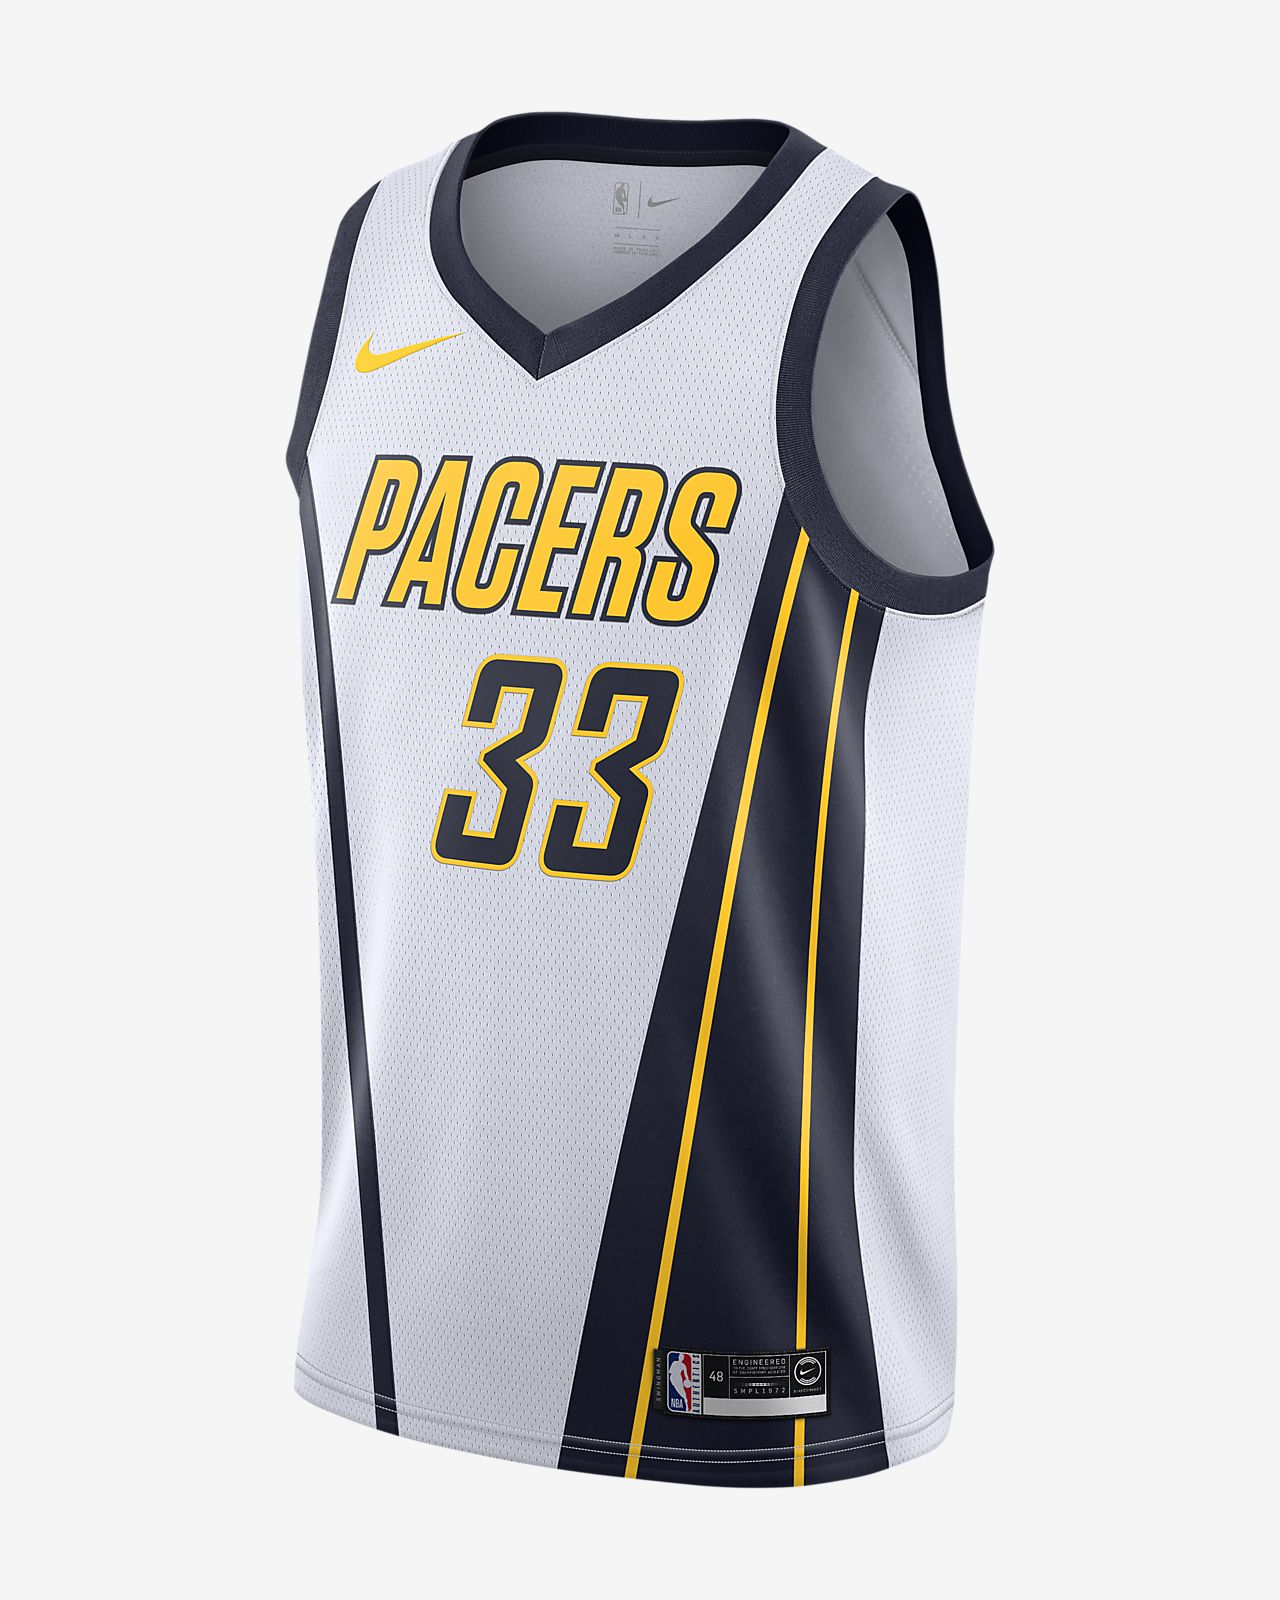 0cf2e54edfc Men s Nike NBA Connected Jersey. Myles Turner Earned City Edition Swingman  (Indiana Pacers)